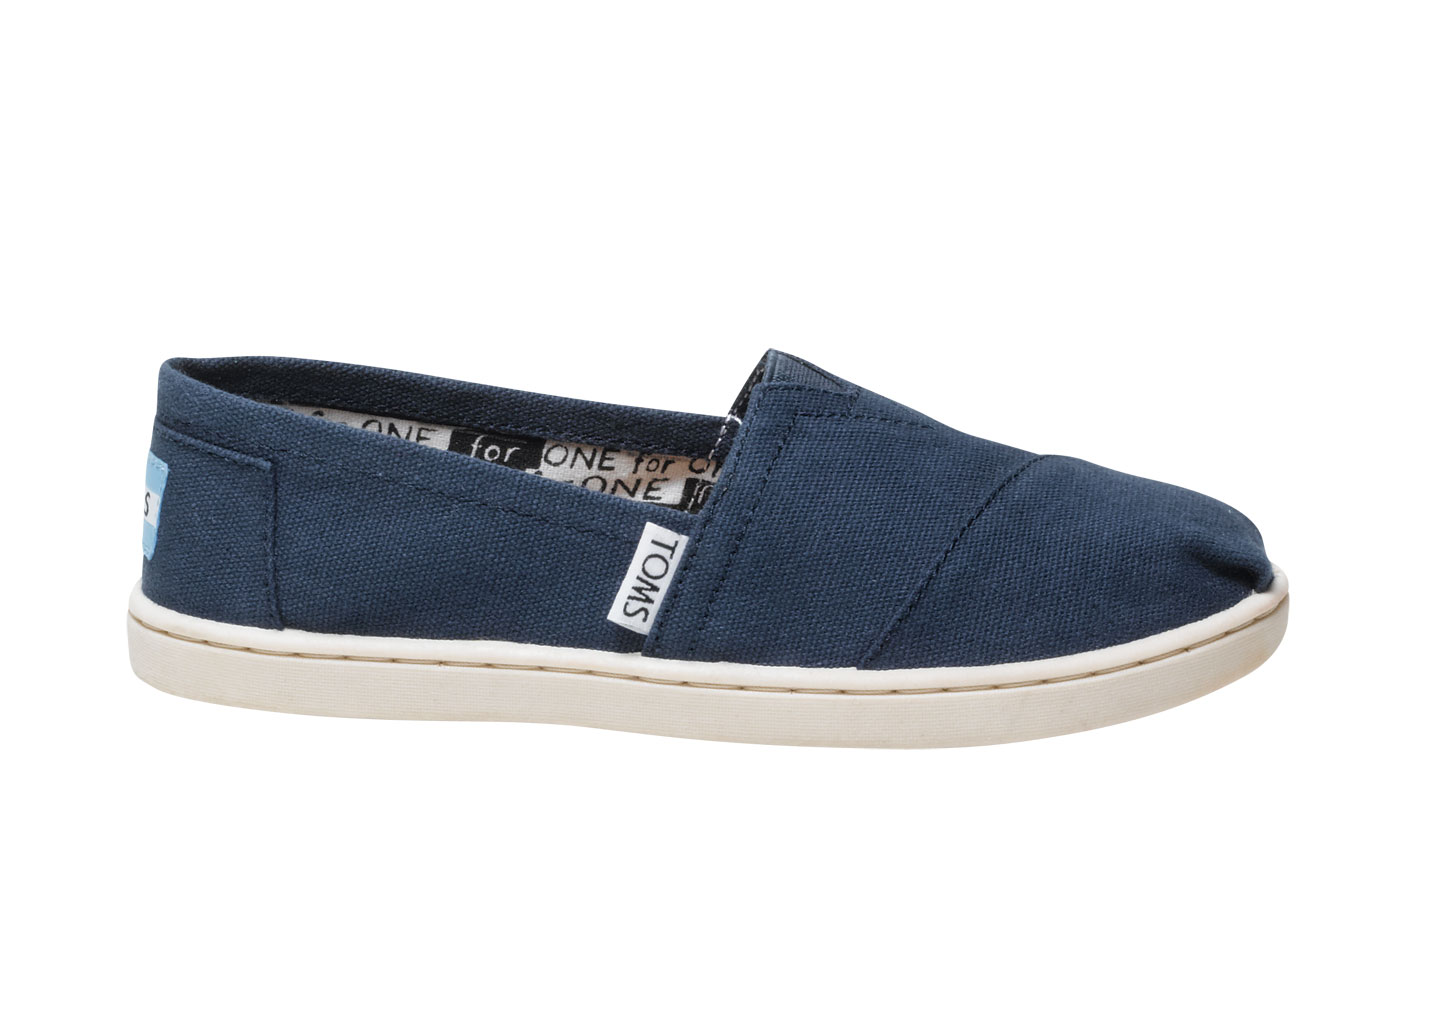 TOMS CANVAS NAVY